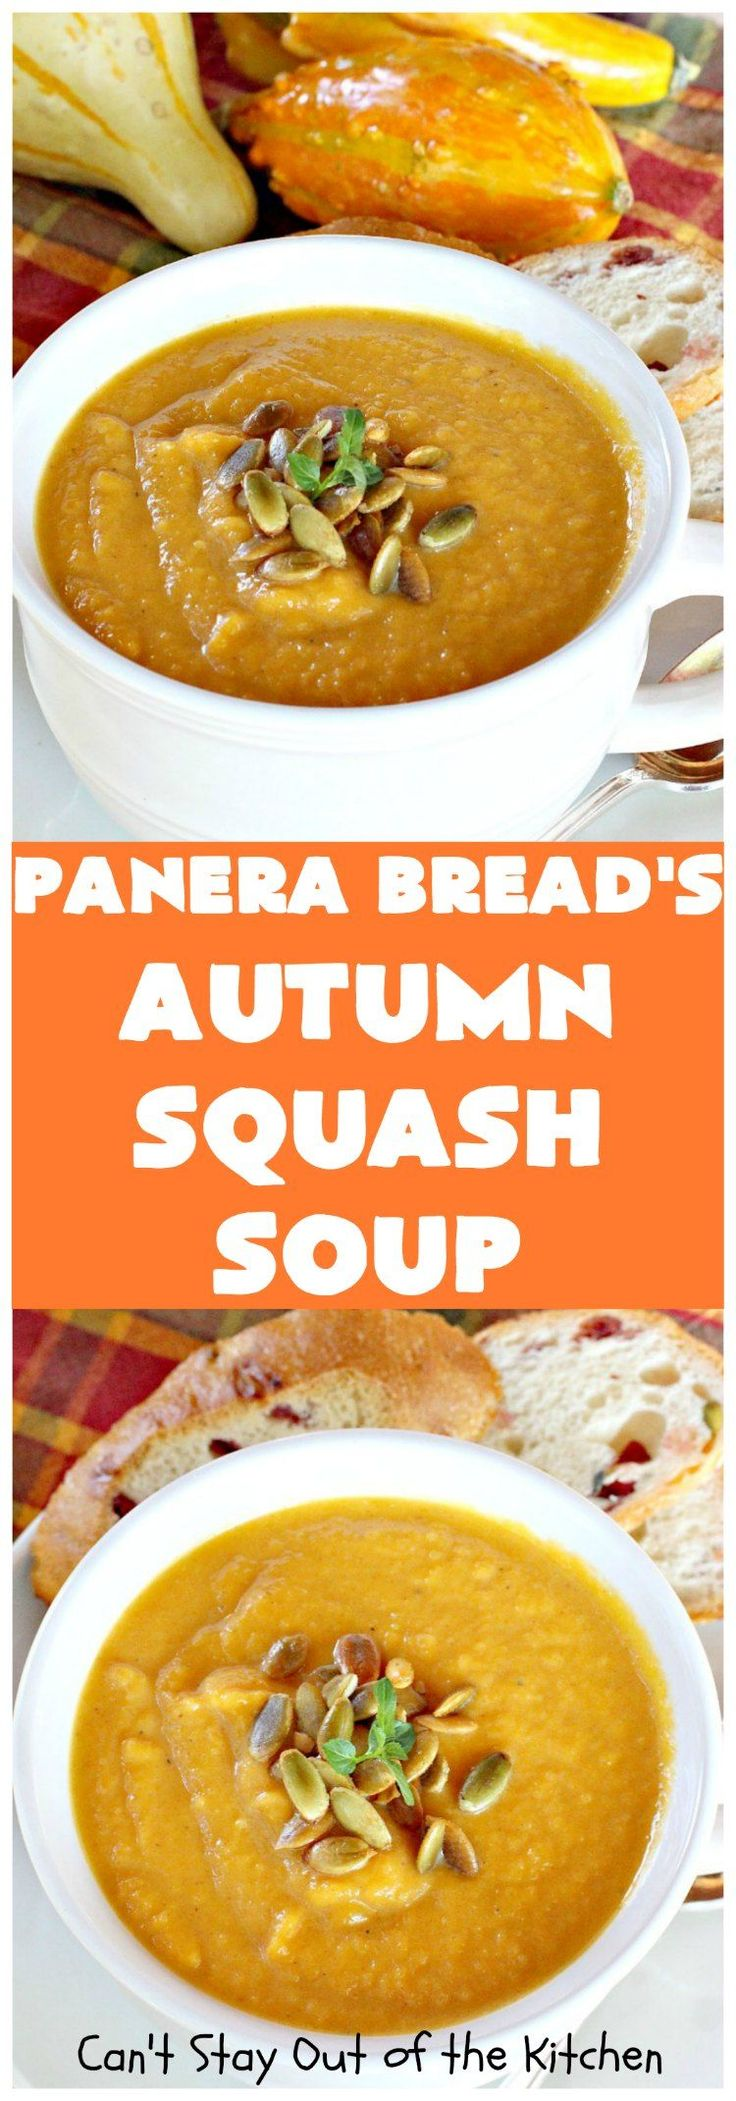 Panera Bread's Autumn Squash Soup | Can't Stay Out…